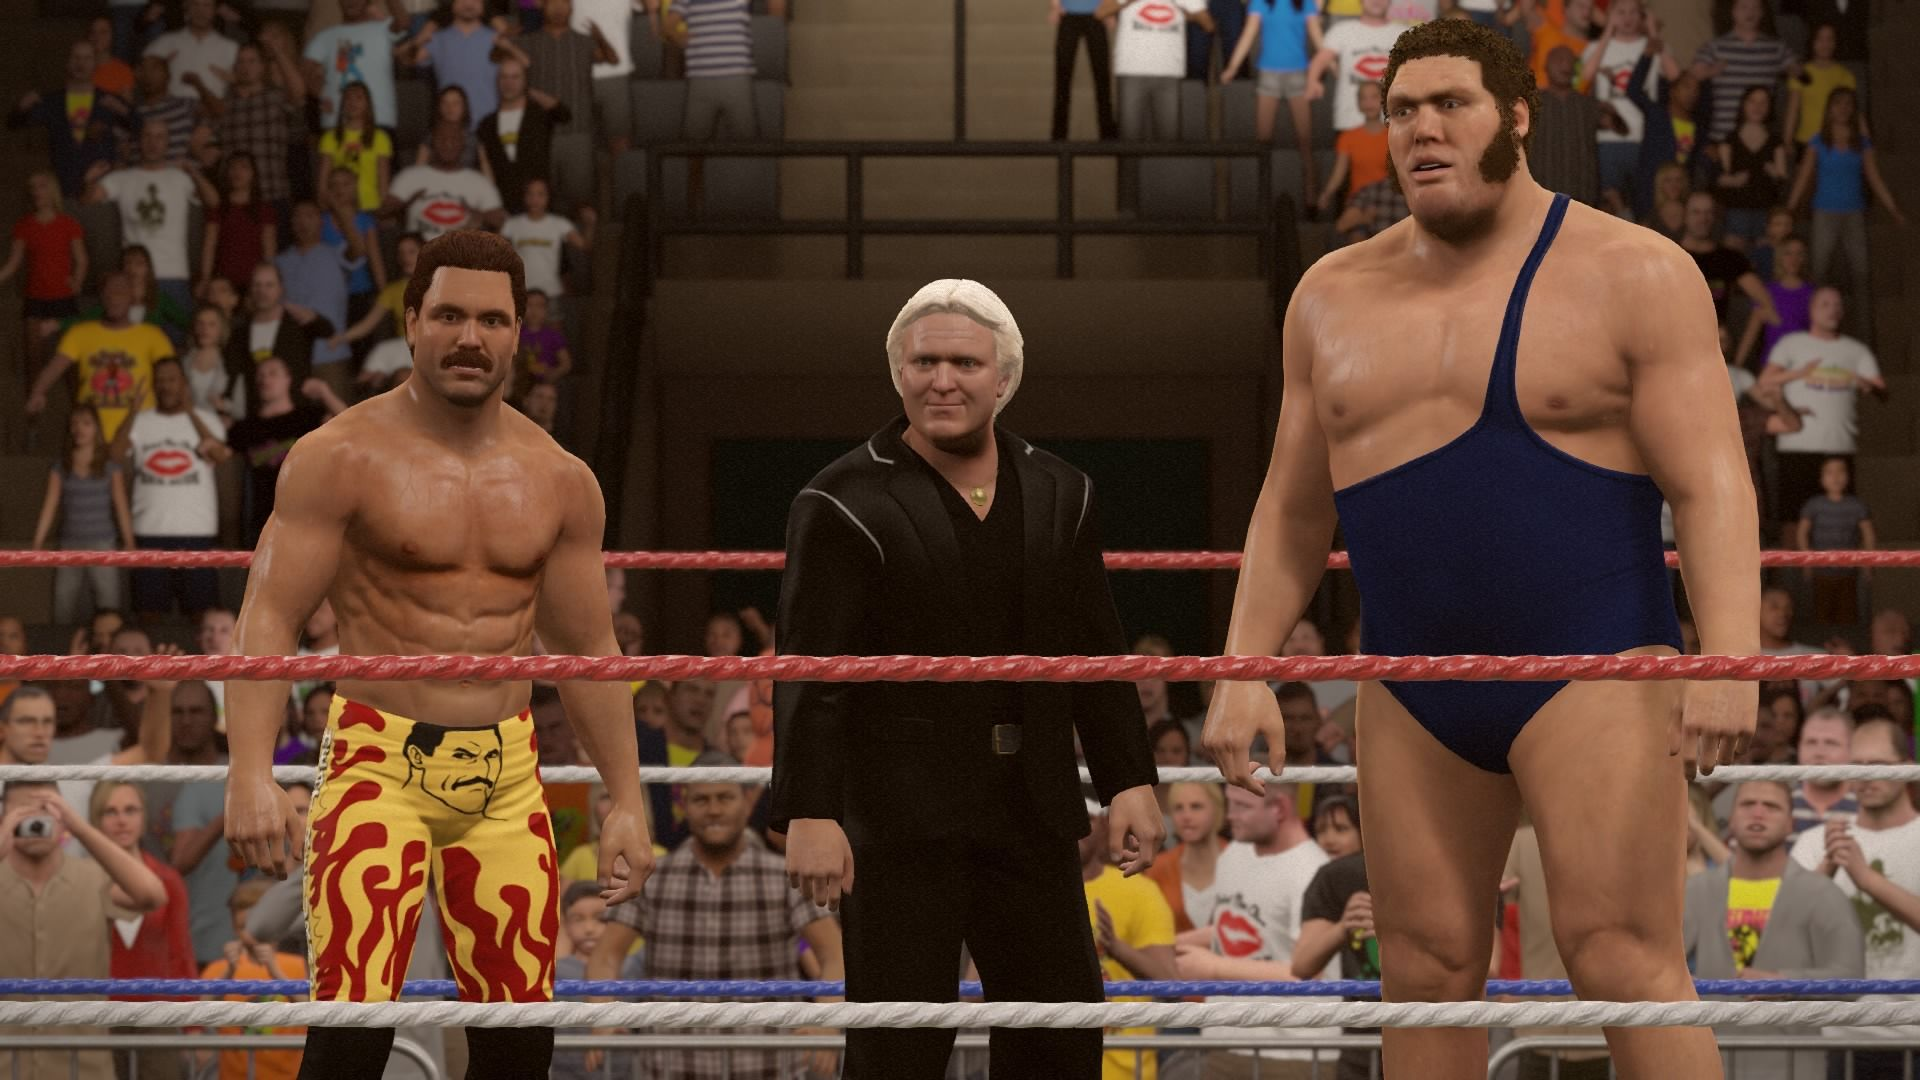 Rick Rude, Bobby Heenan & Andre The Giant.